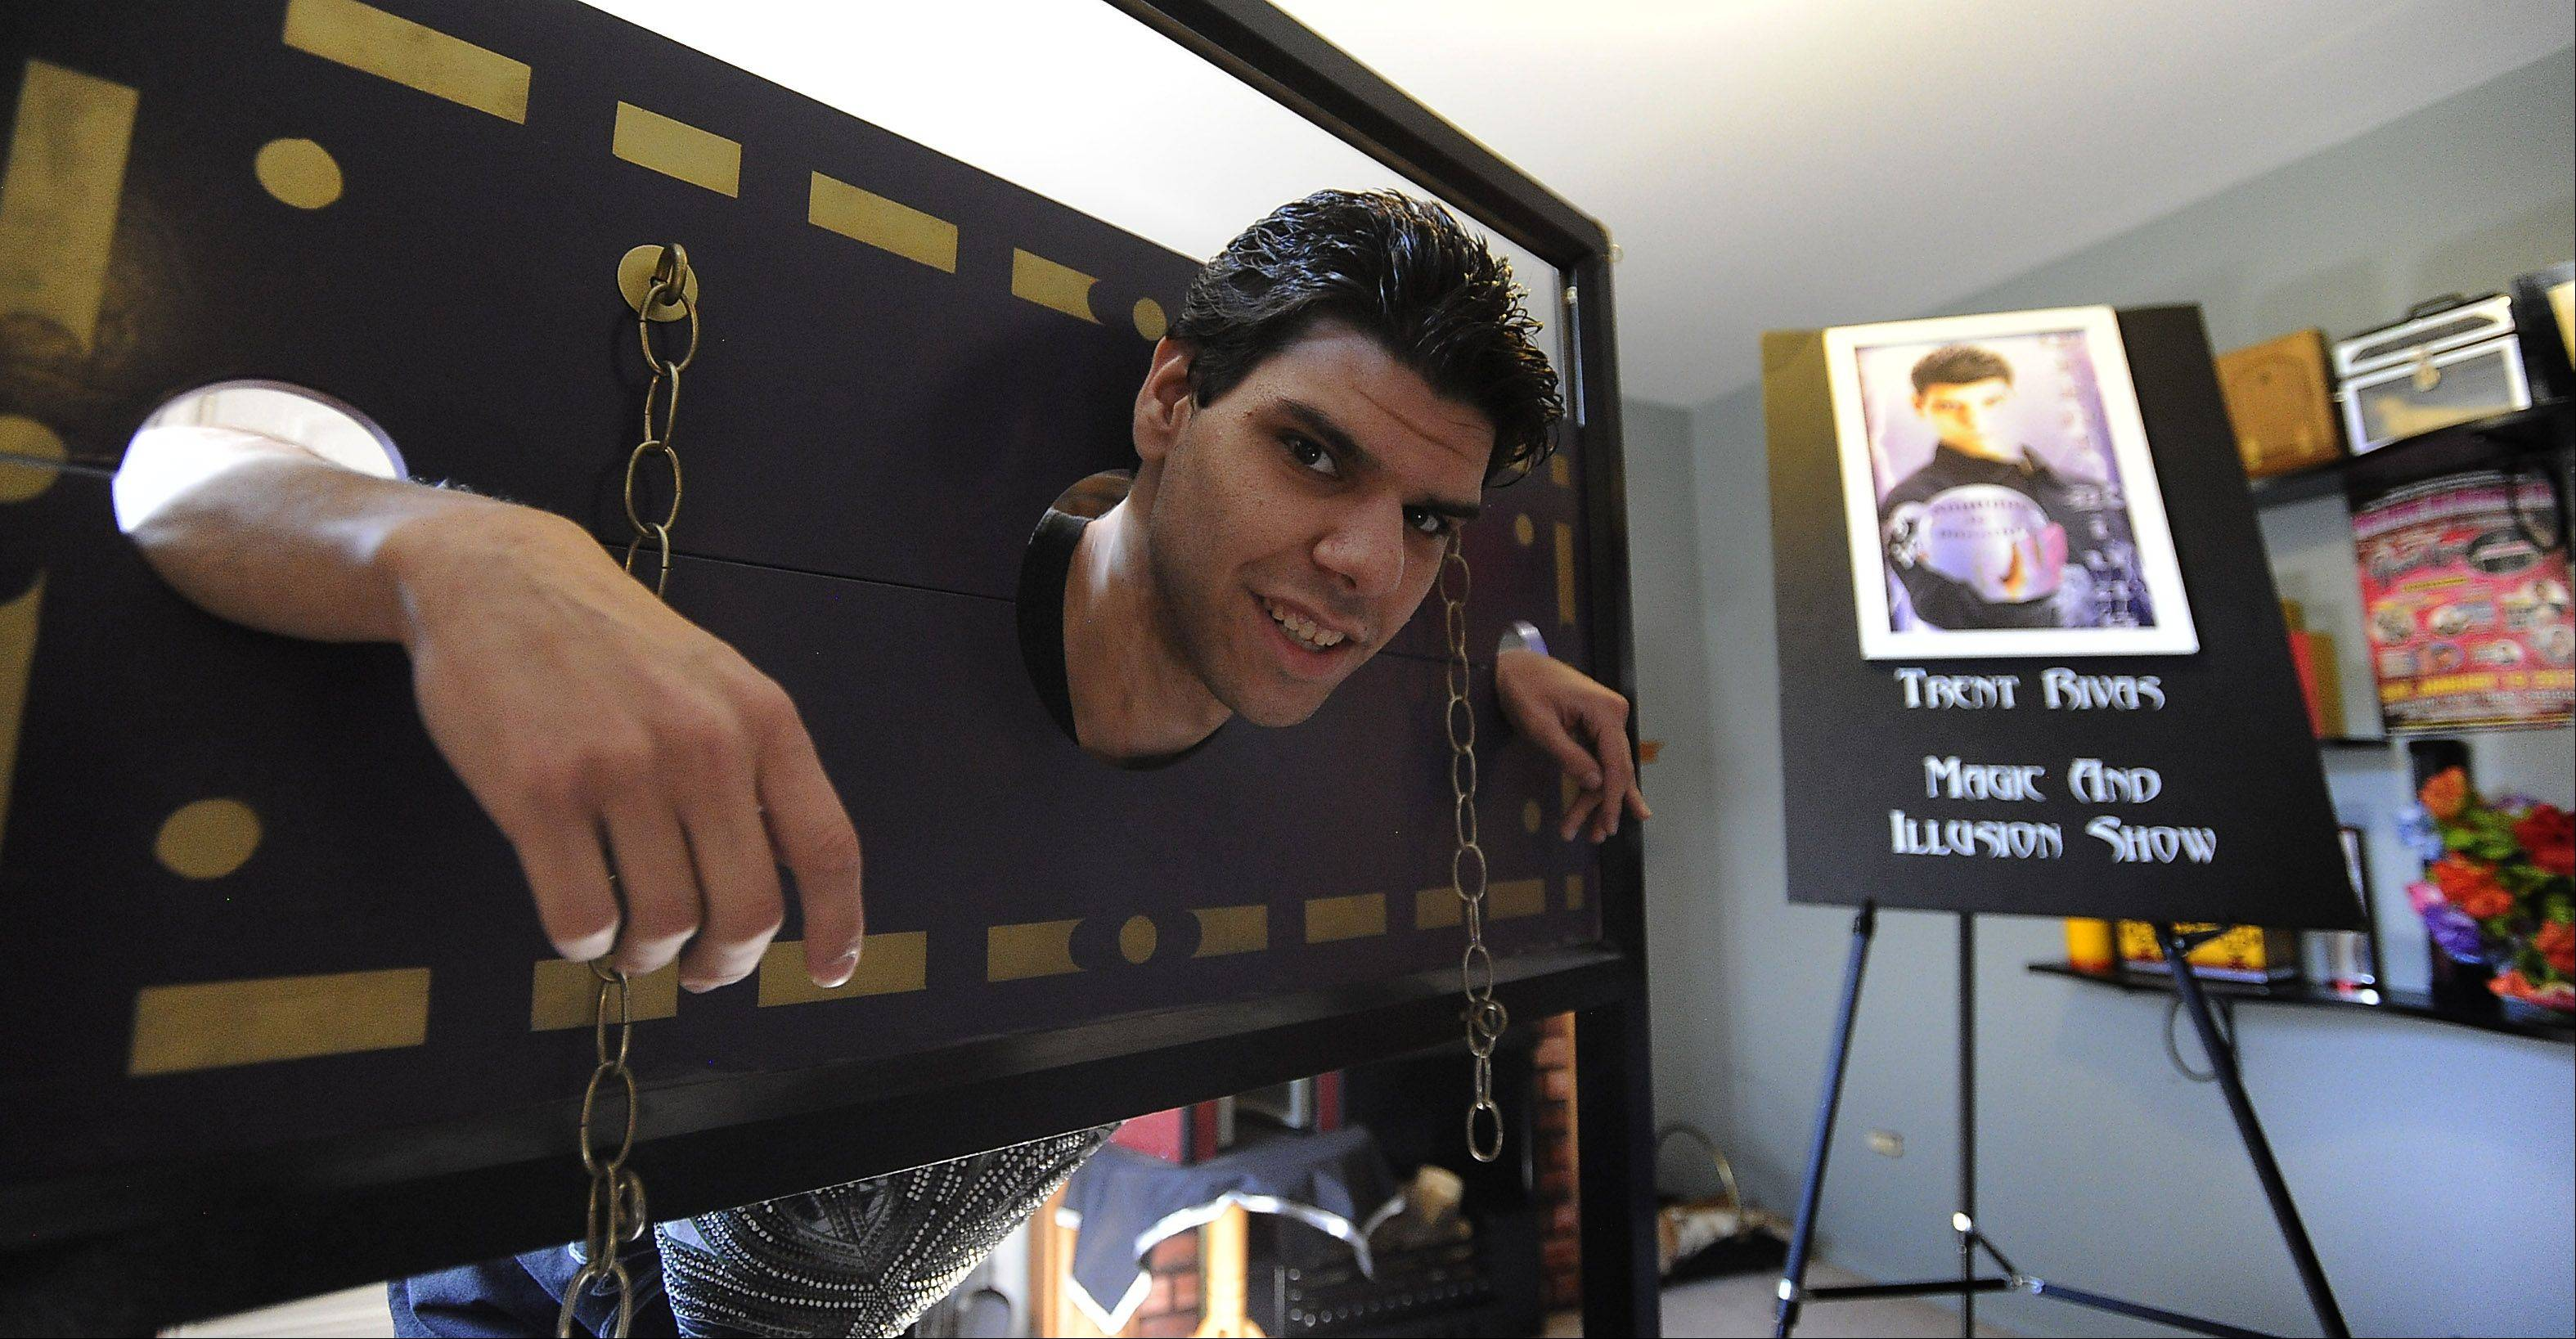 As a child, Trent Rivas often was trapped by his mental and physical disabilities. But since discovering magic and working tirelessly on learning routines such as this escape trick, the 24-year-old Des Plaines man has unlocked a new world of opportunities.